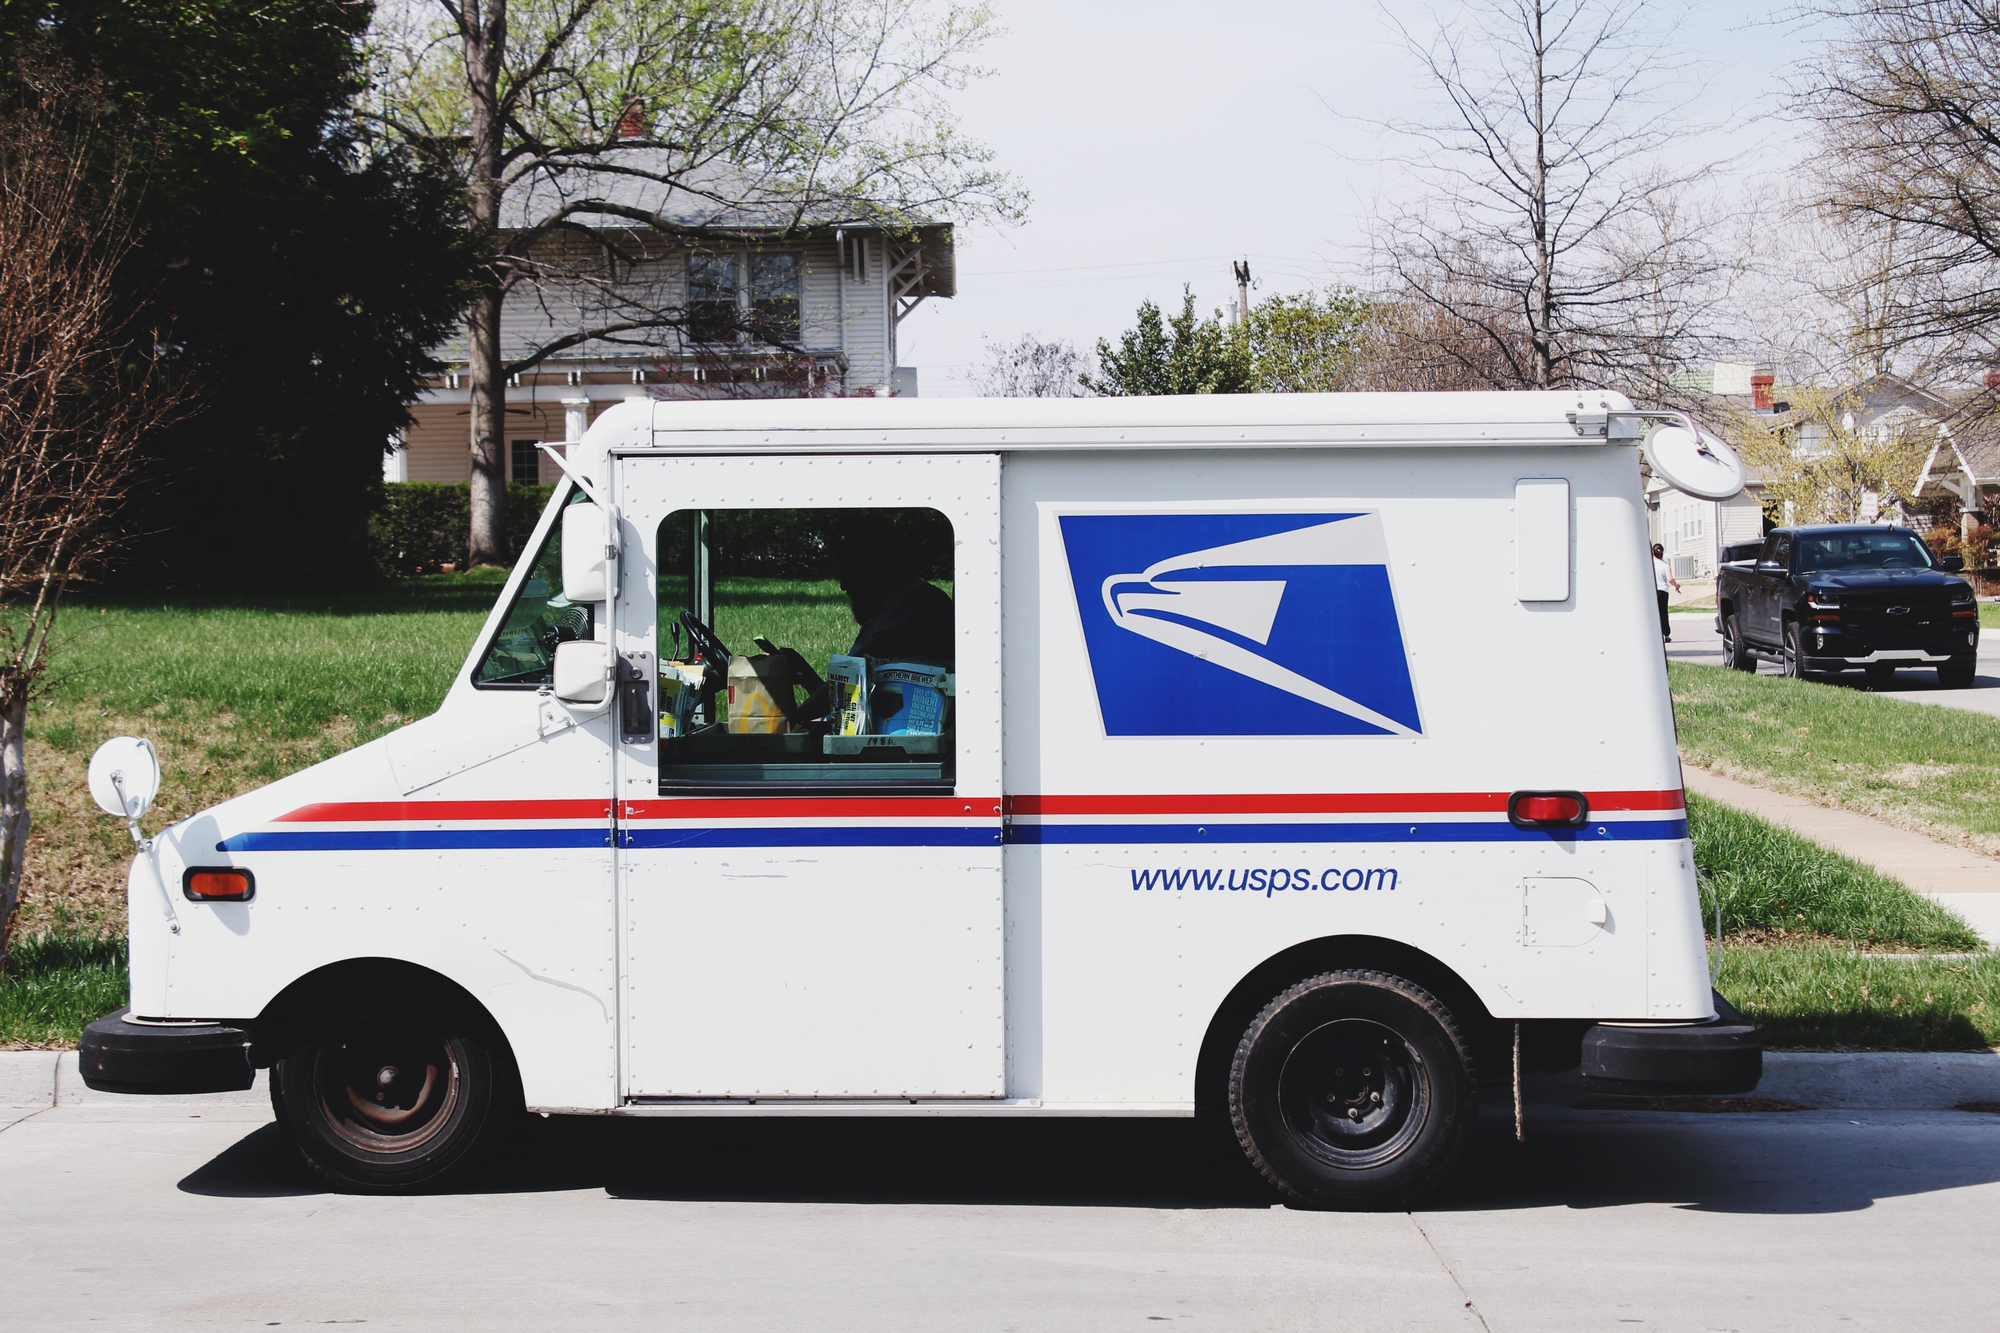 The United State Postal Service Trends on BrandGraph® After a Rise in Funding Concerns